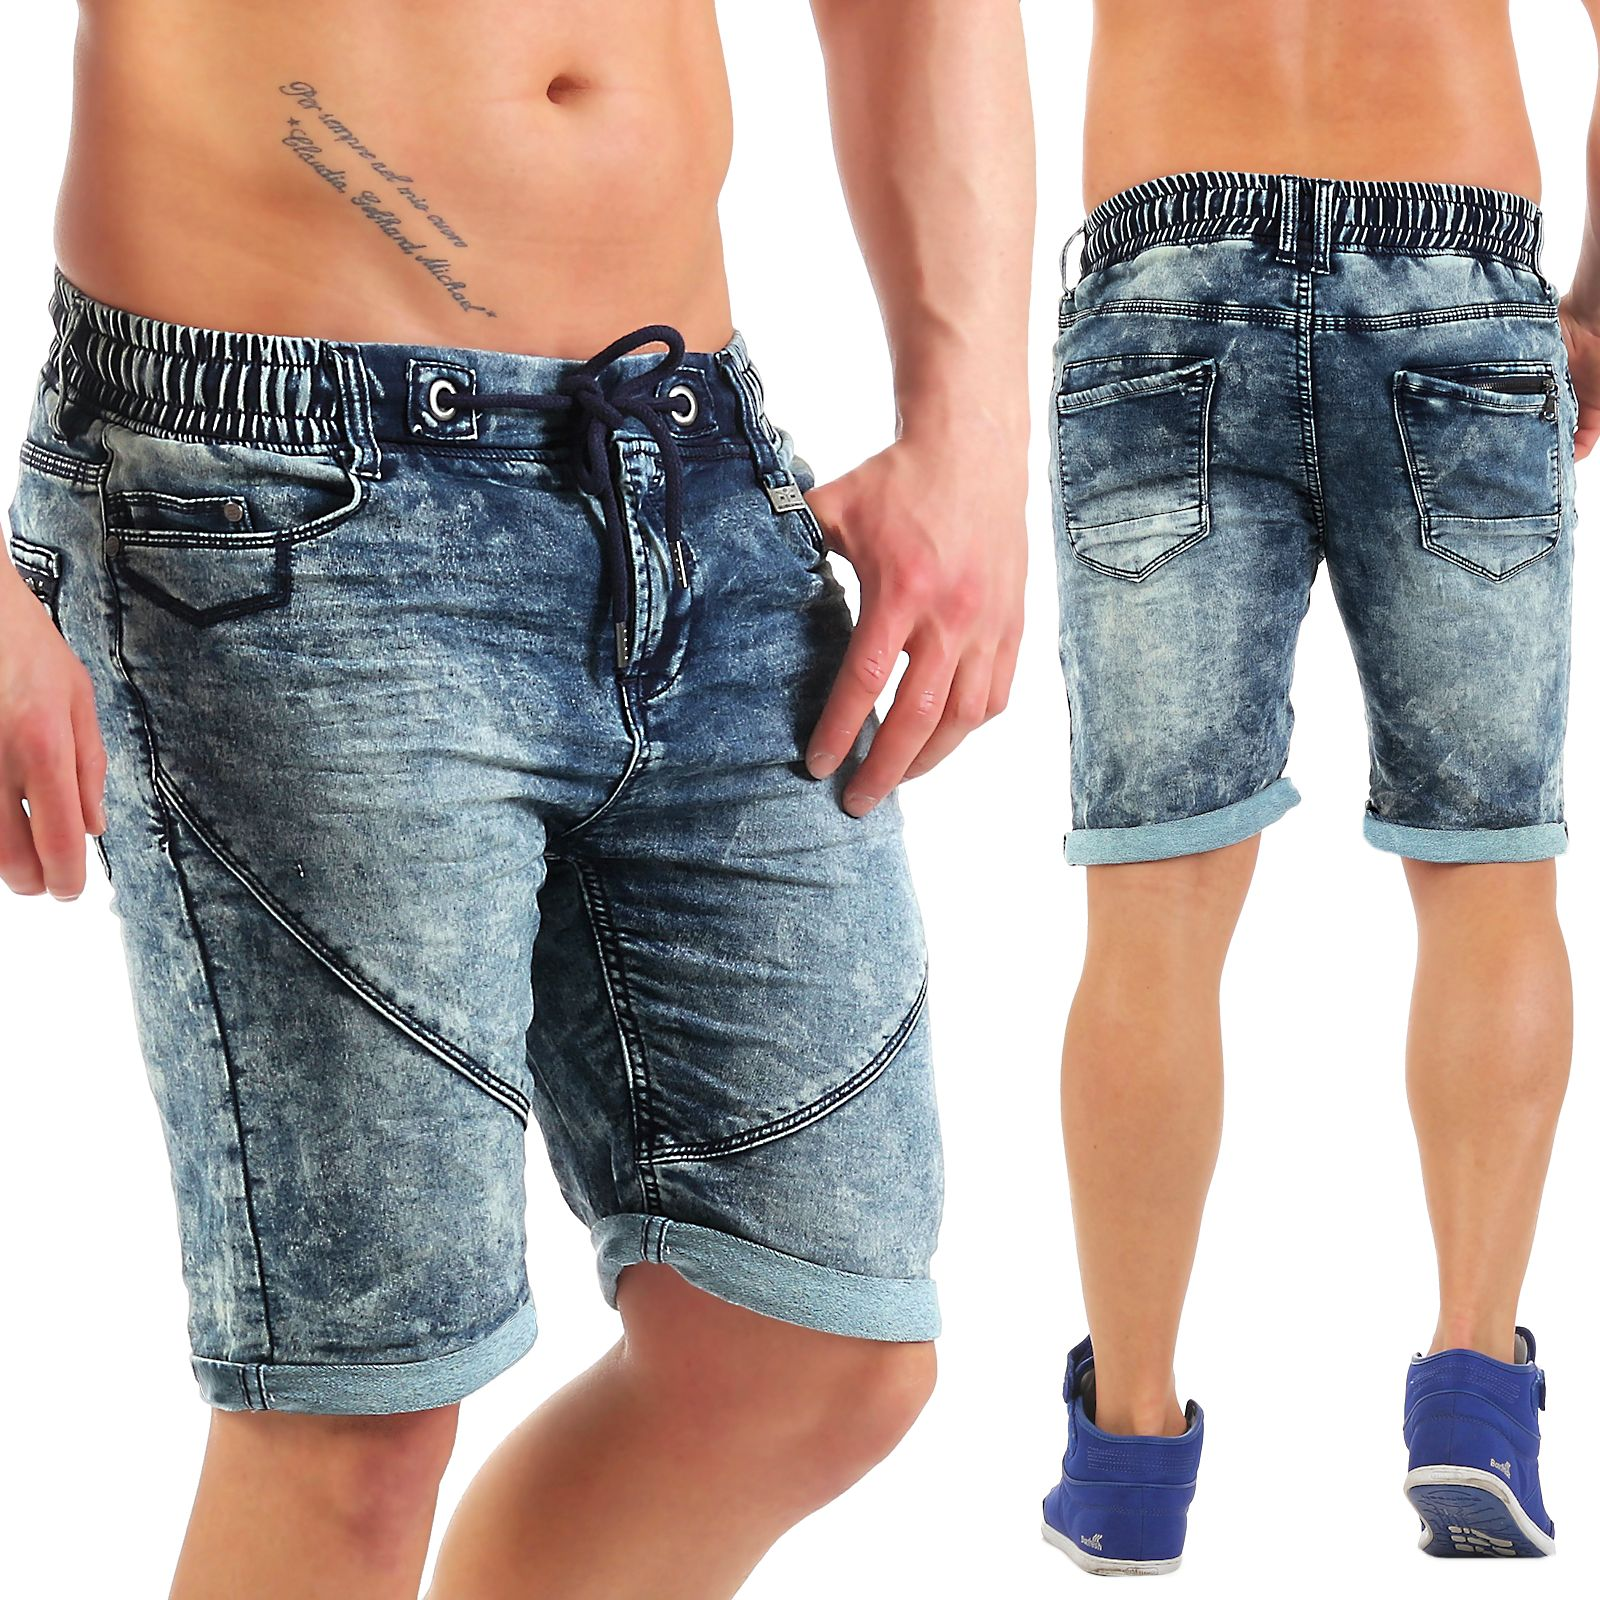 sublevel herren jogg jeans shorts zz1 kurze hose bermuda. Black Bedroom Furniture Sets. Home Design Ideas